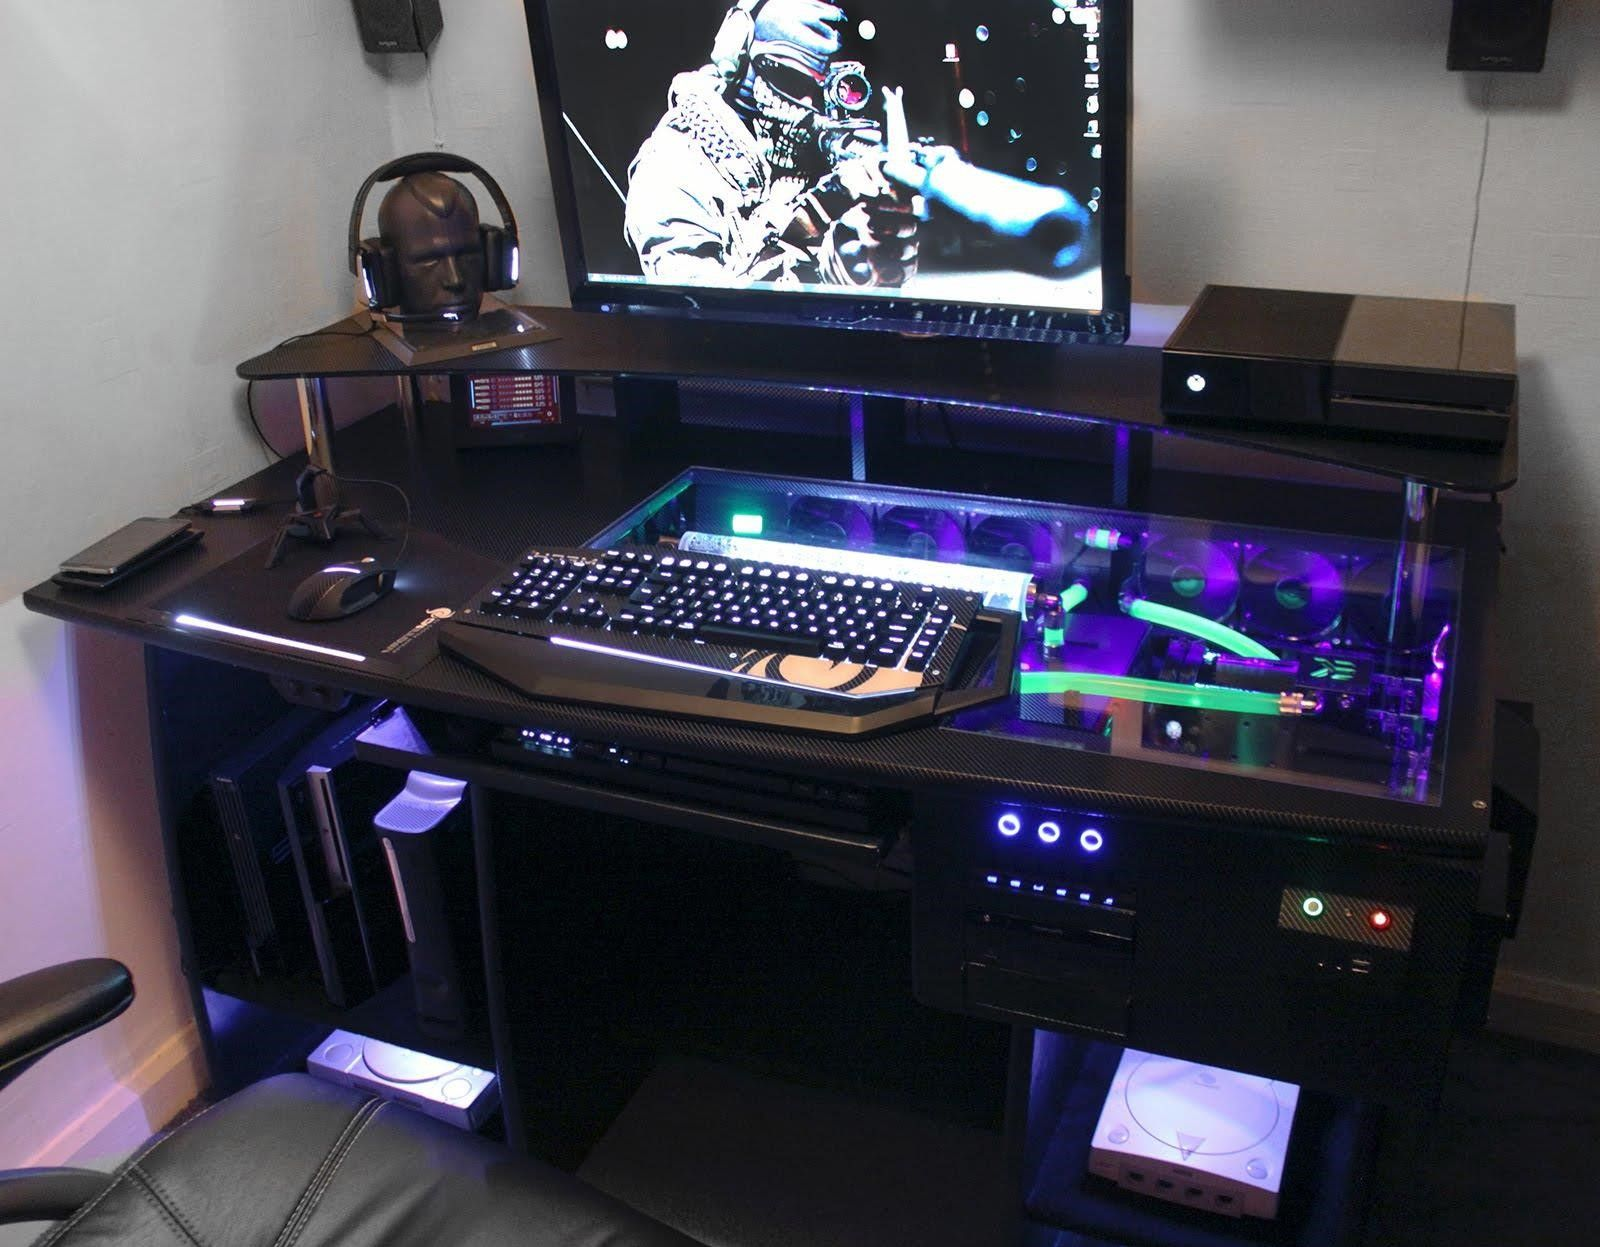 custom gaming computer desk Personal Space Pinterest